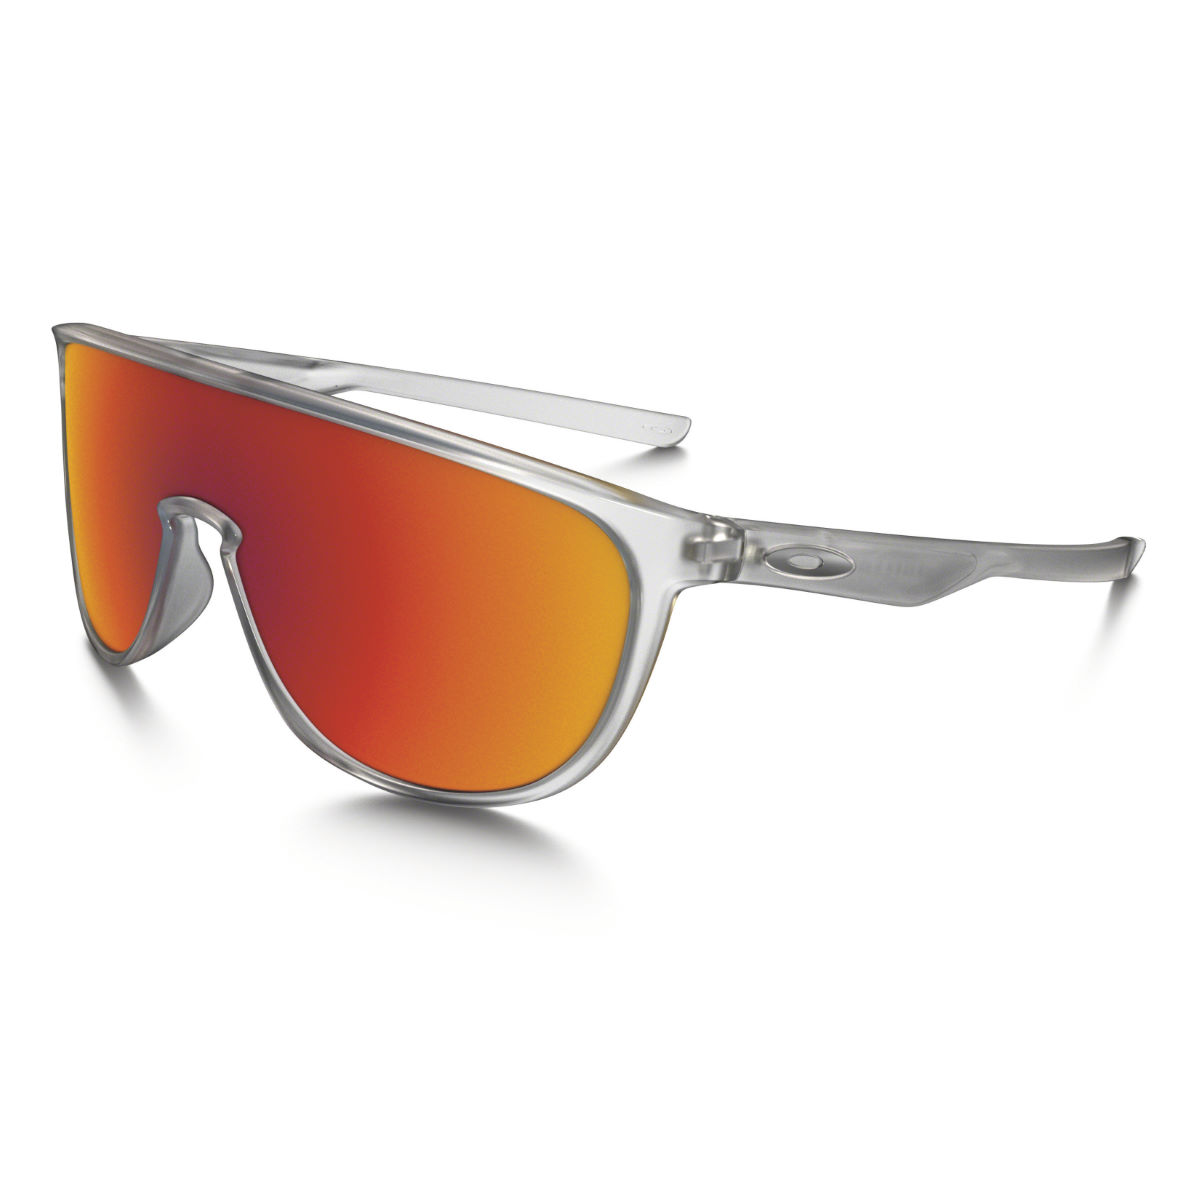 Oakley Trillbe Matte Clear Torch Iridium Sunglasses - One Size